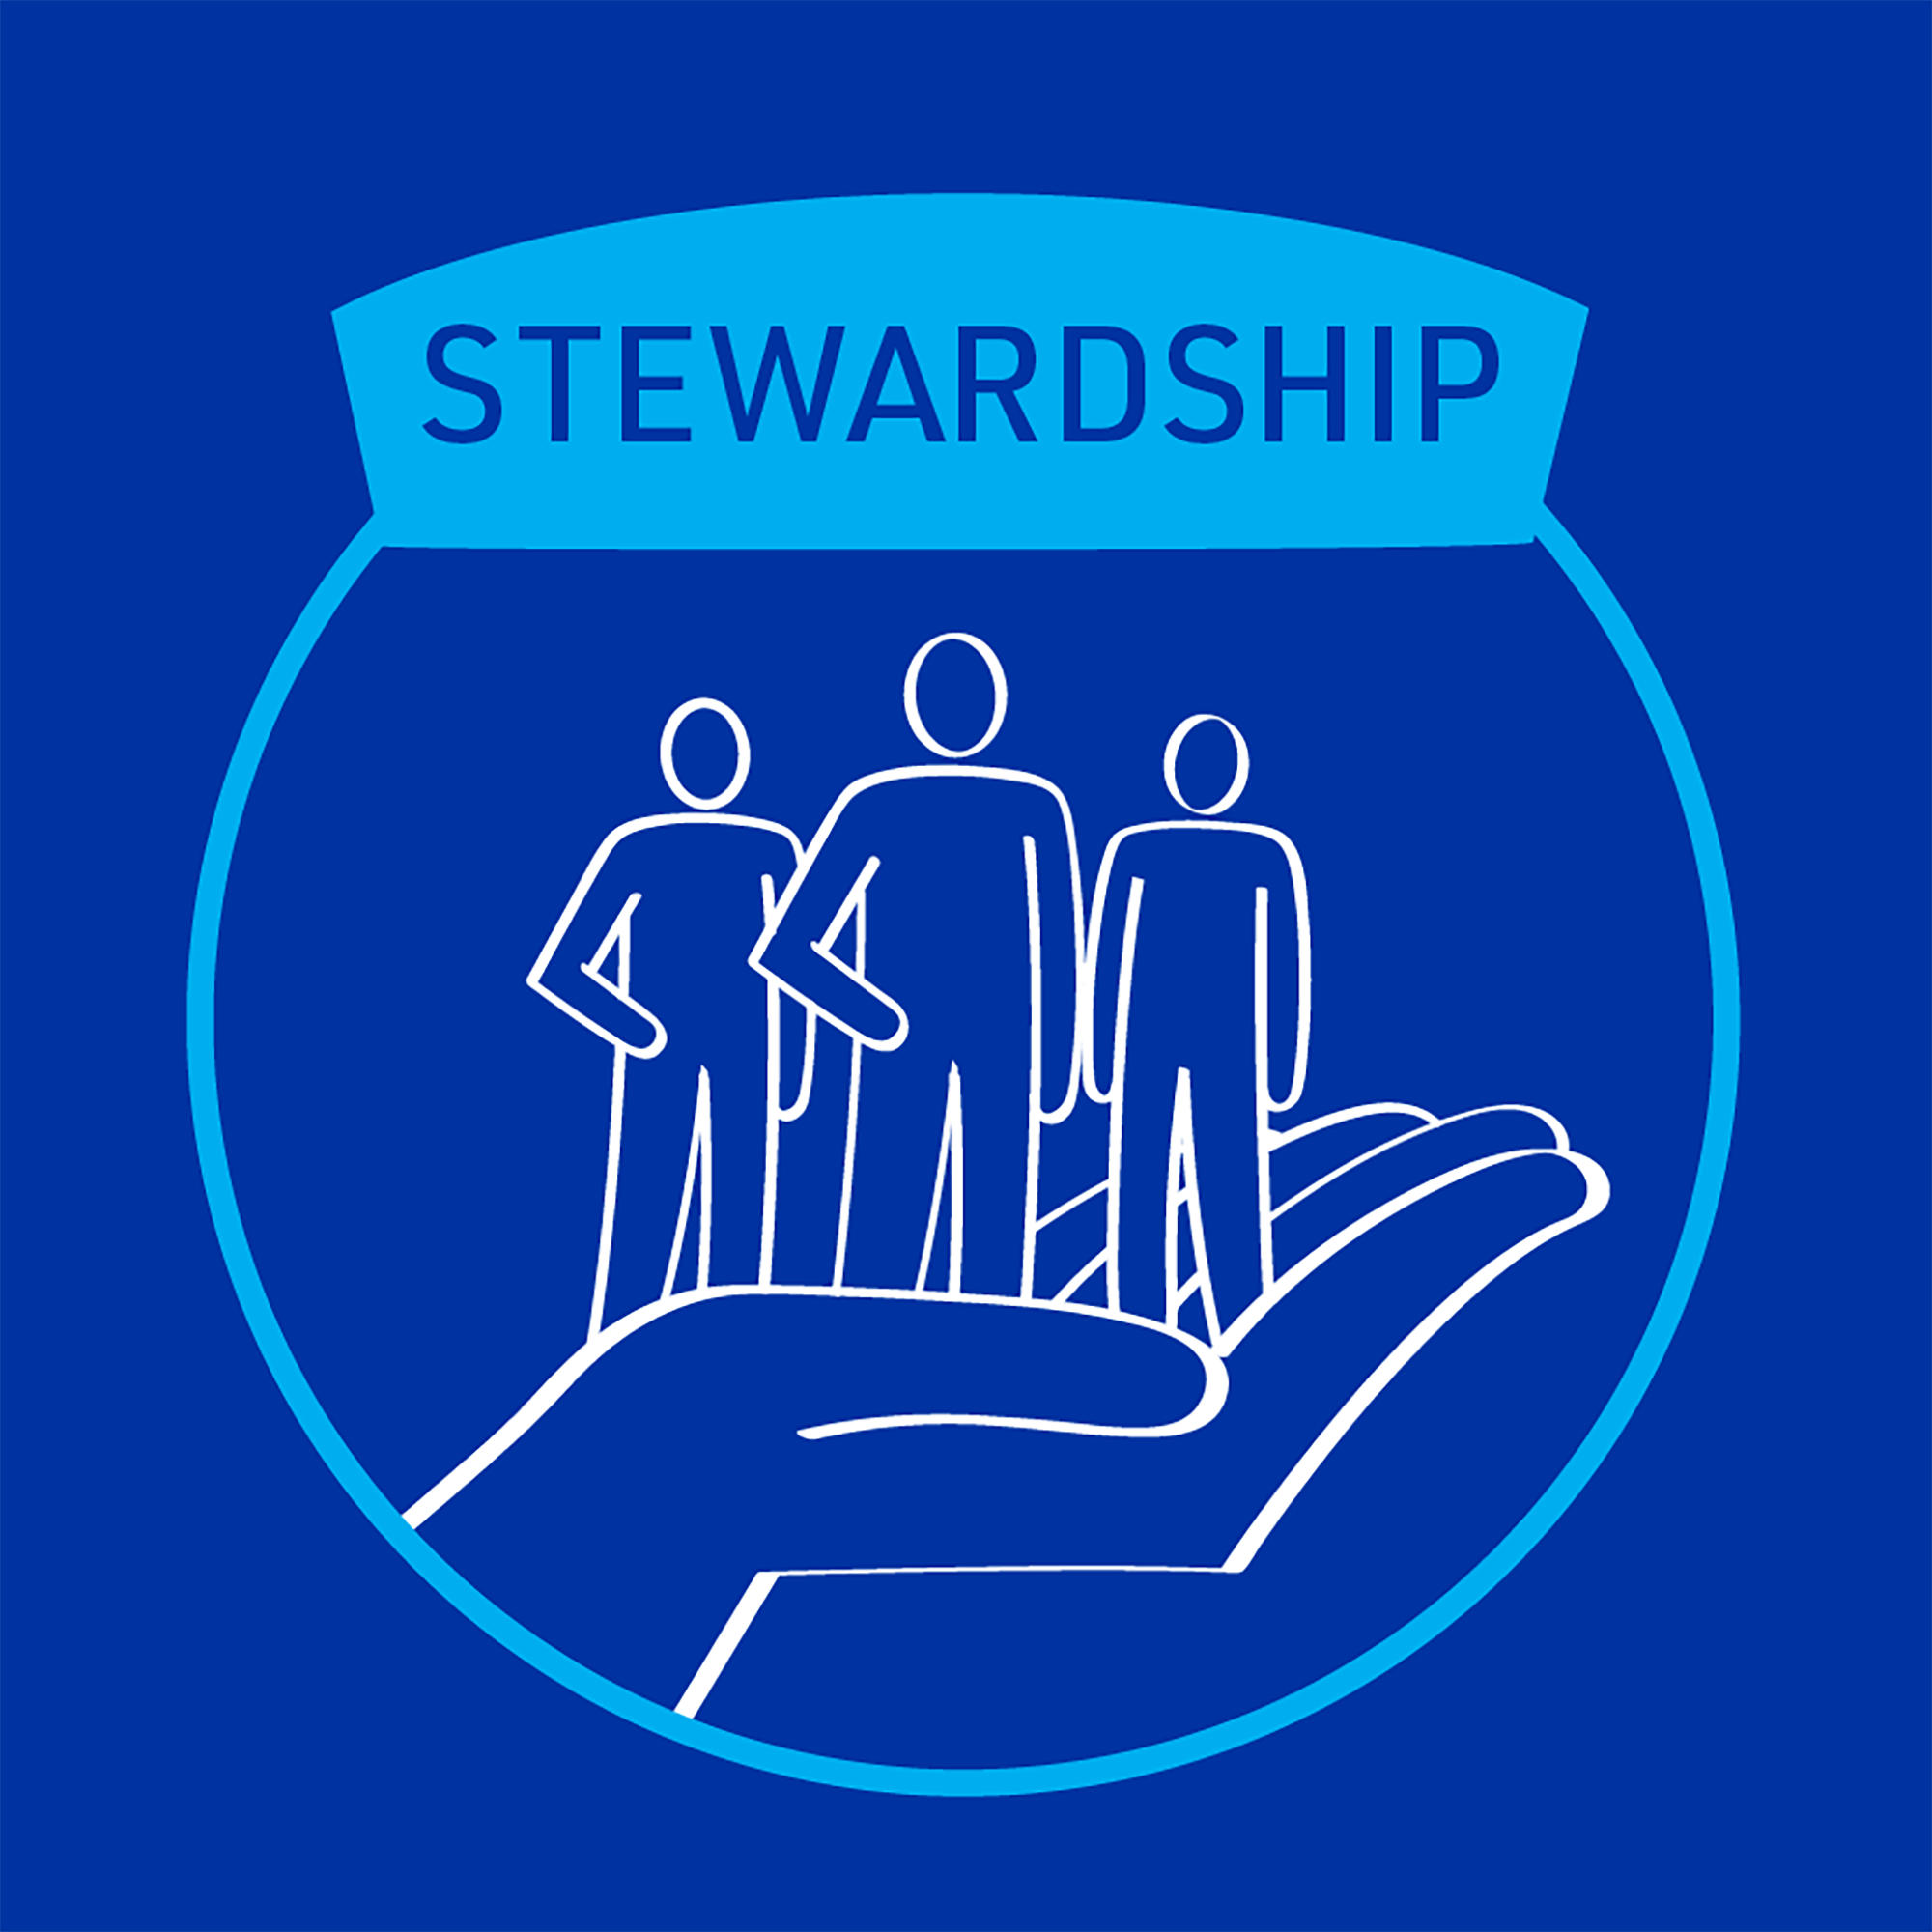 MiTek's guiding principle of stewardship - A square graphic of a large hand holding up three people standing